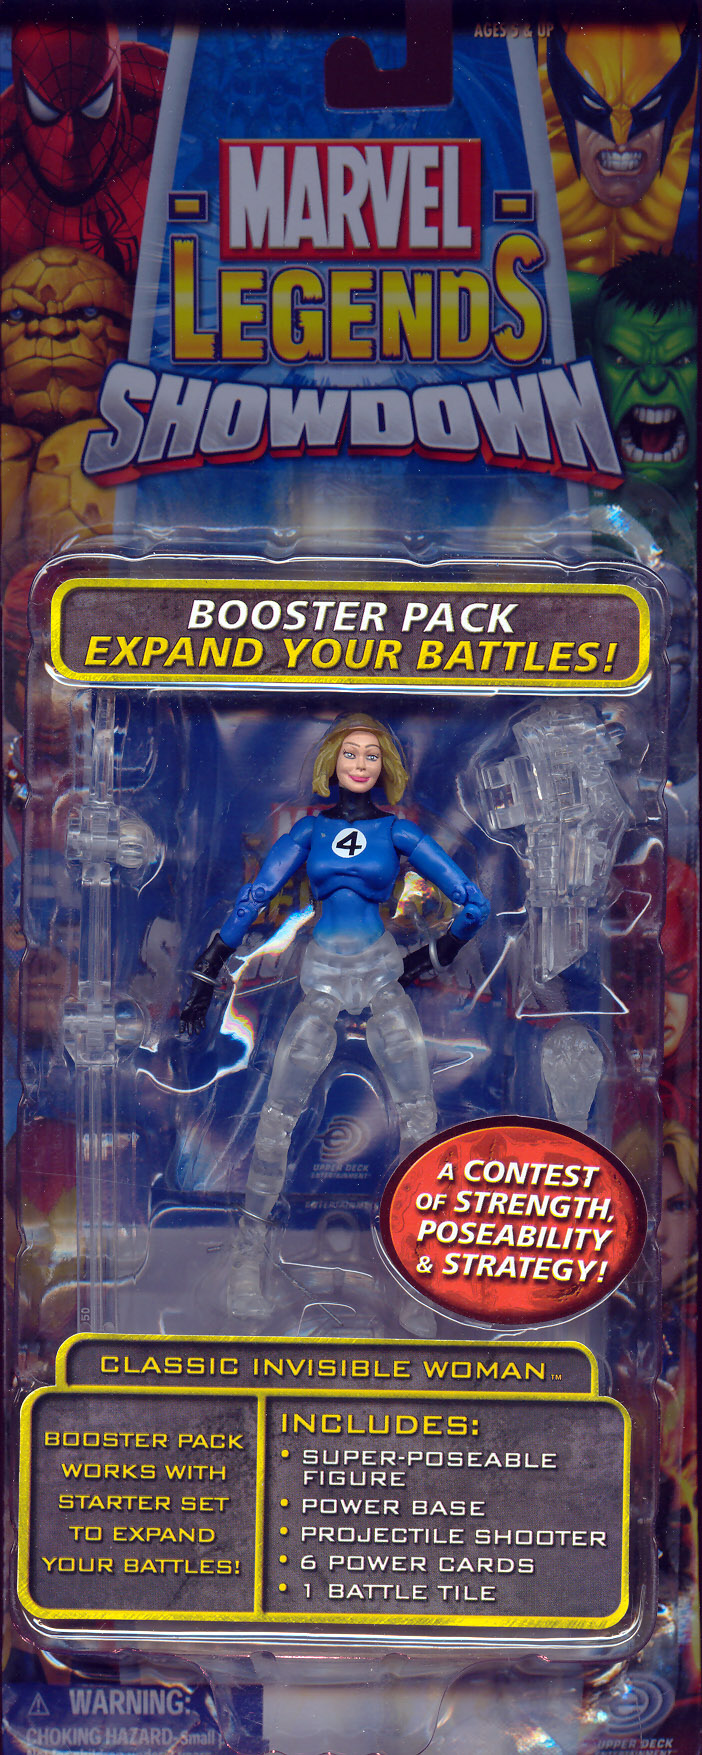 Classic Invisible Woman (Marvel Legends Showdown, phasing)